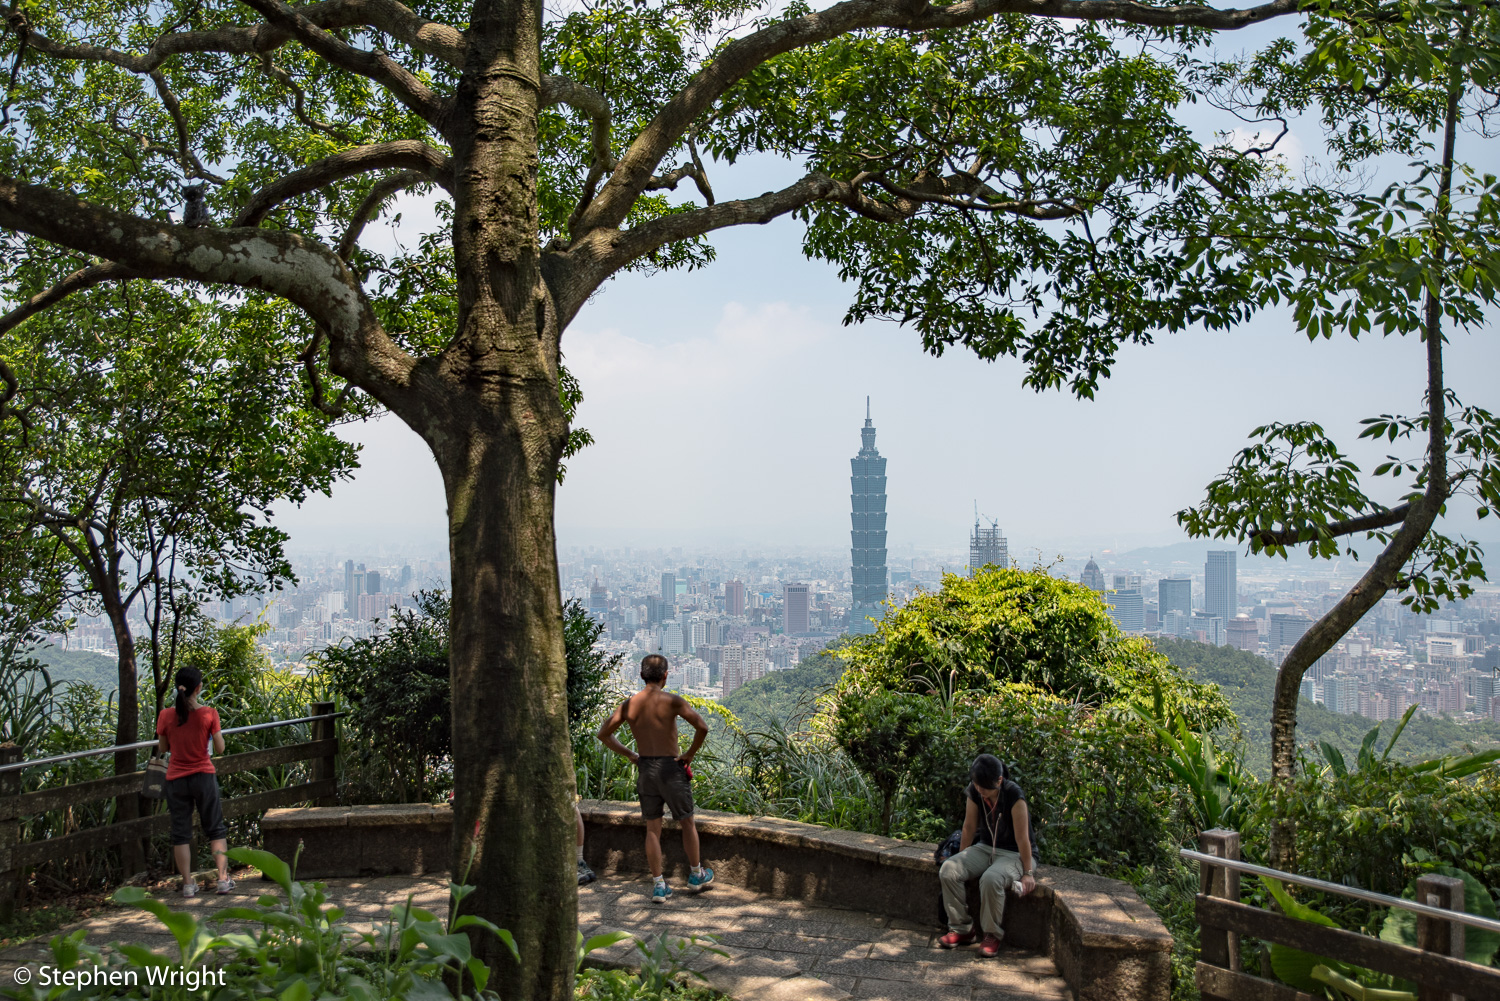 Elephant Mountain overlooking the iconic skyscraper, Taipei 101.